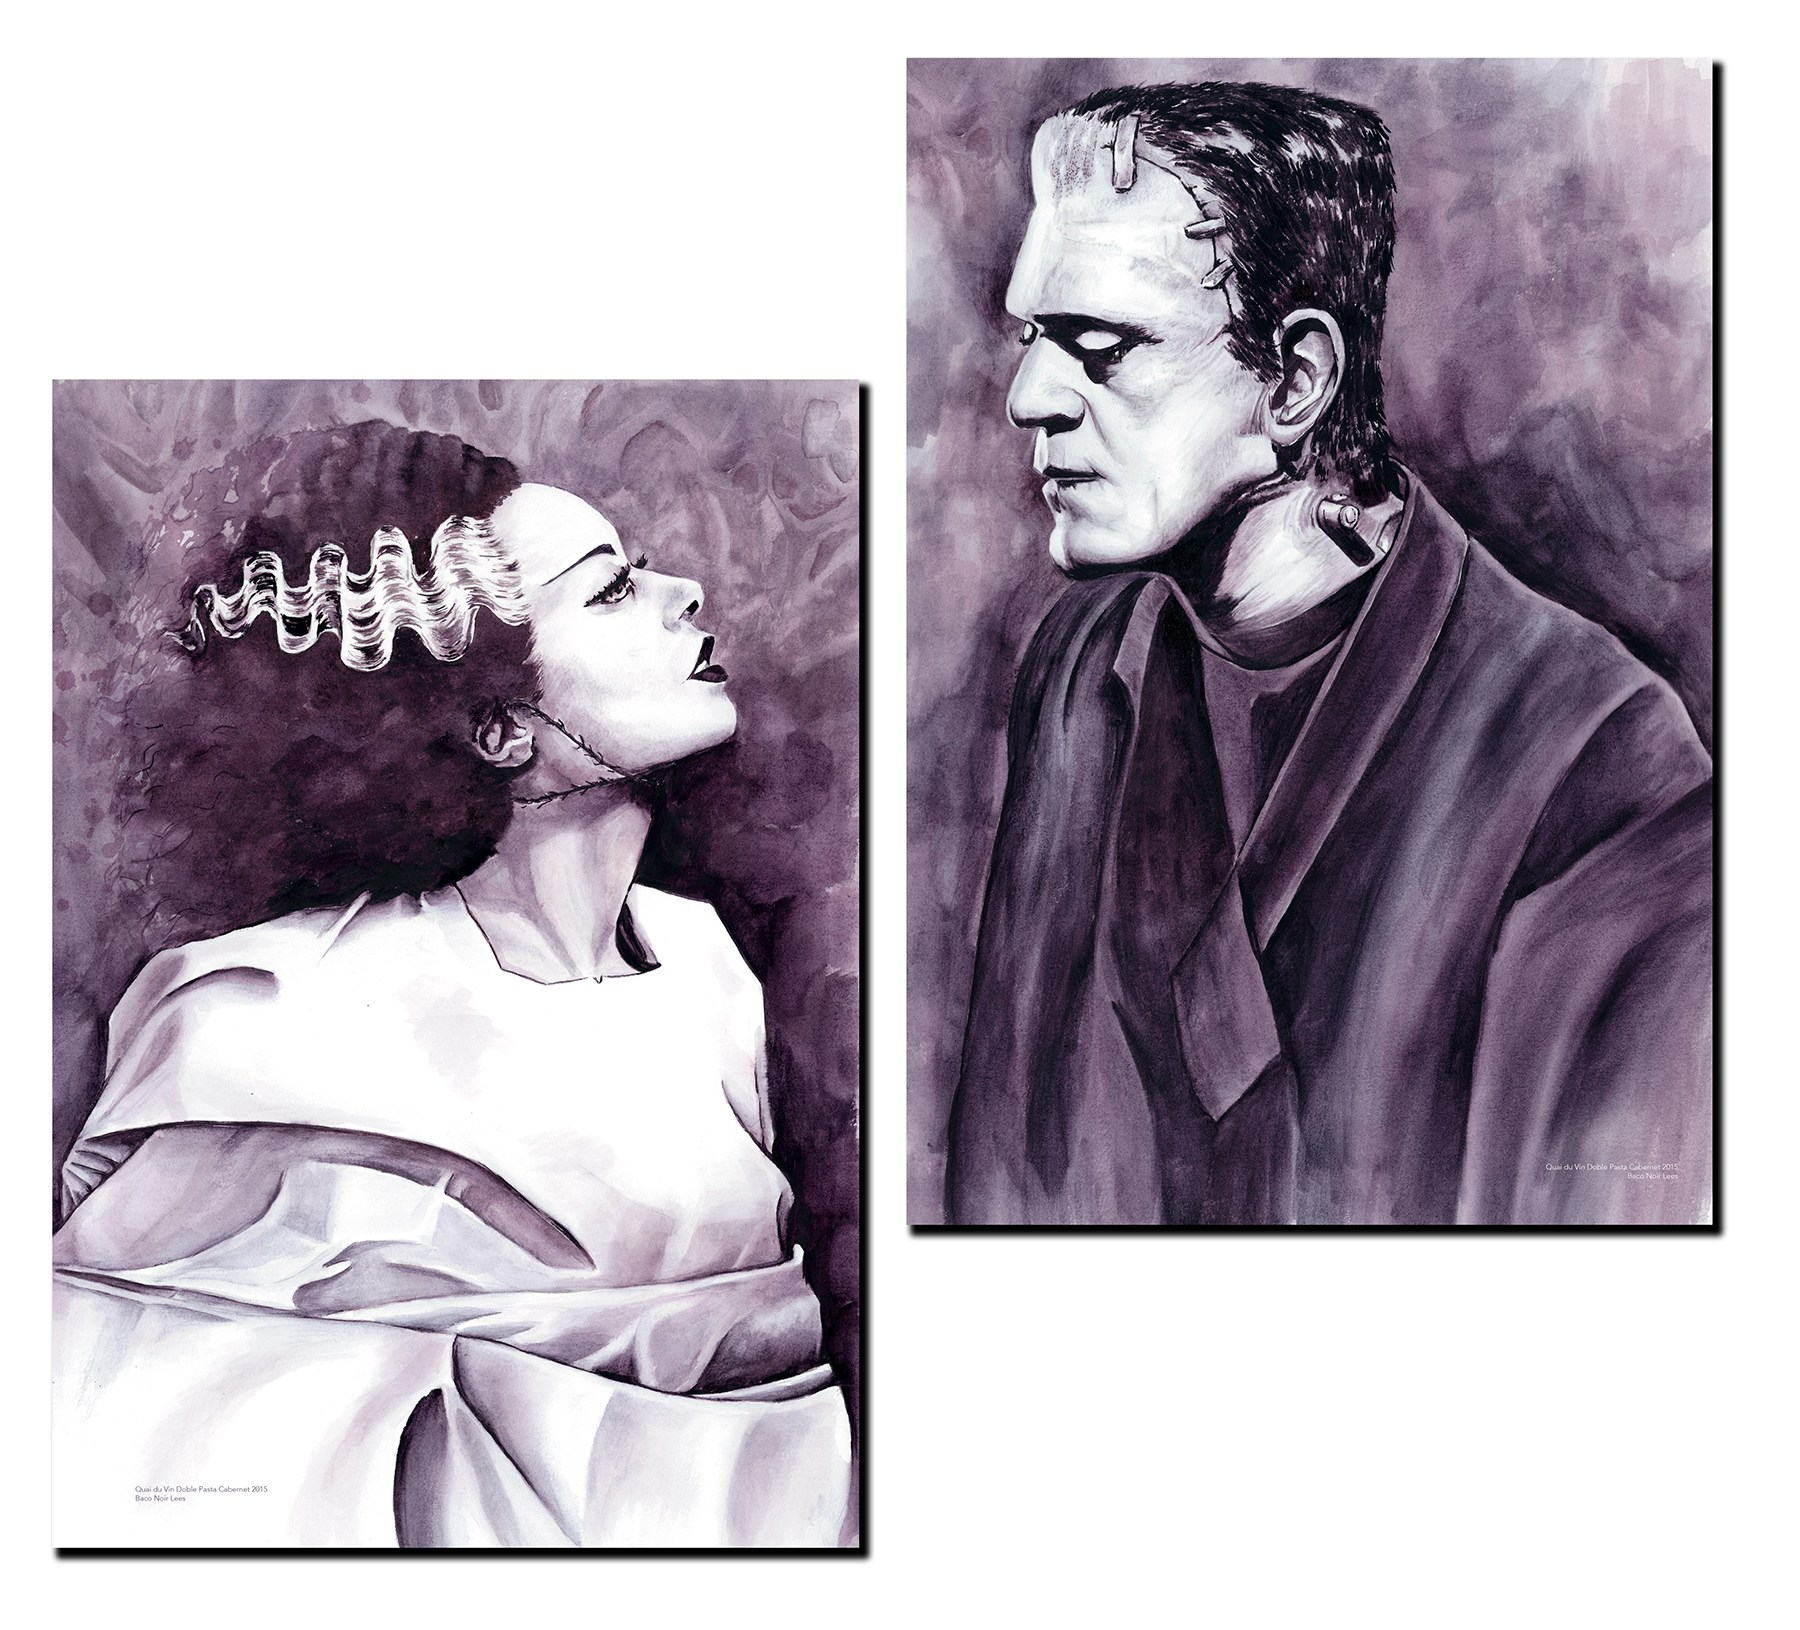 Bride of Frankenstein by Melissa Proudlock Painted with Wine wine painting.jpg